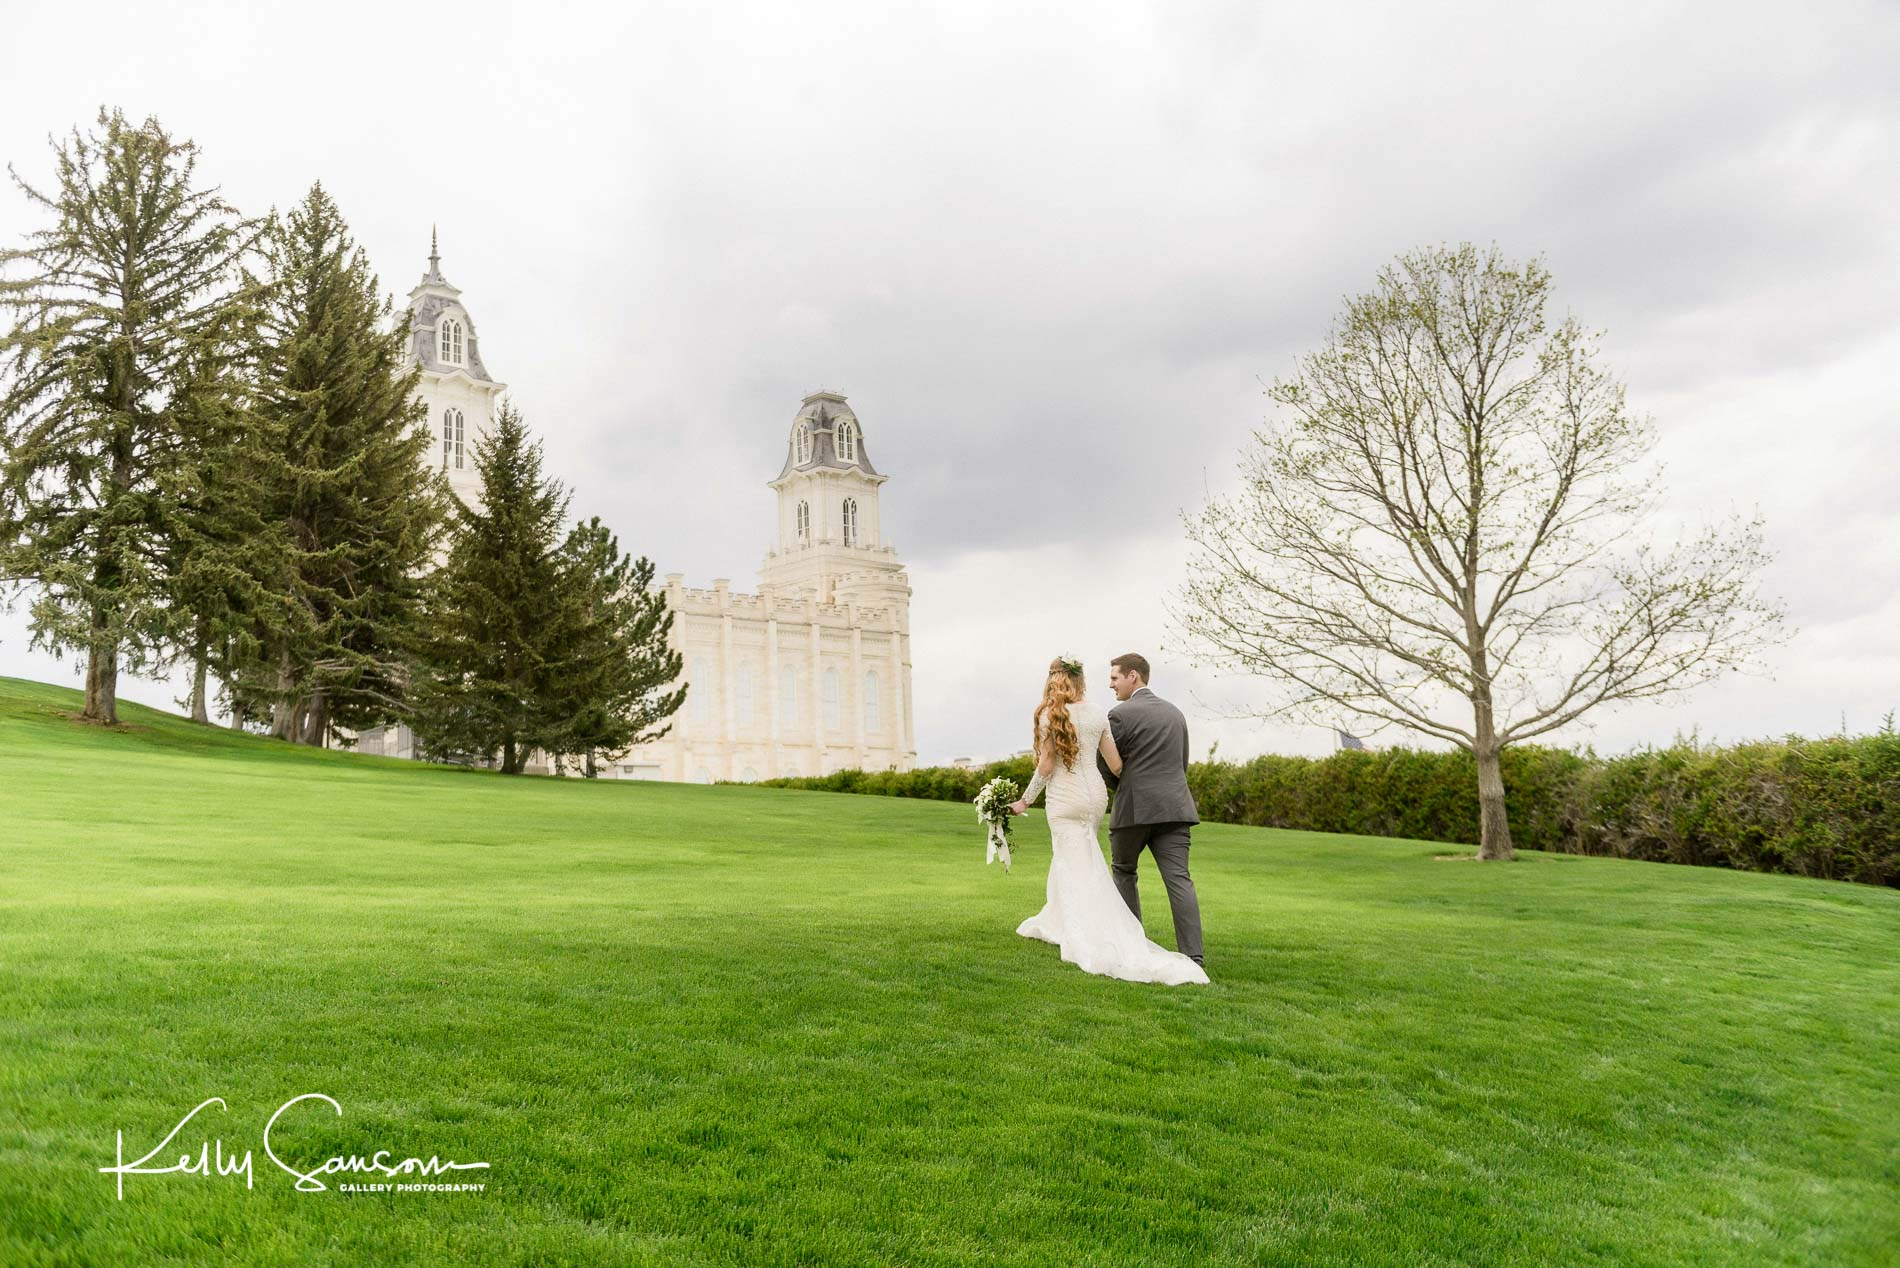 A bride and groom walk towards the Manti temple for Manti temple wedding photography.